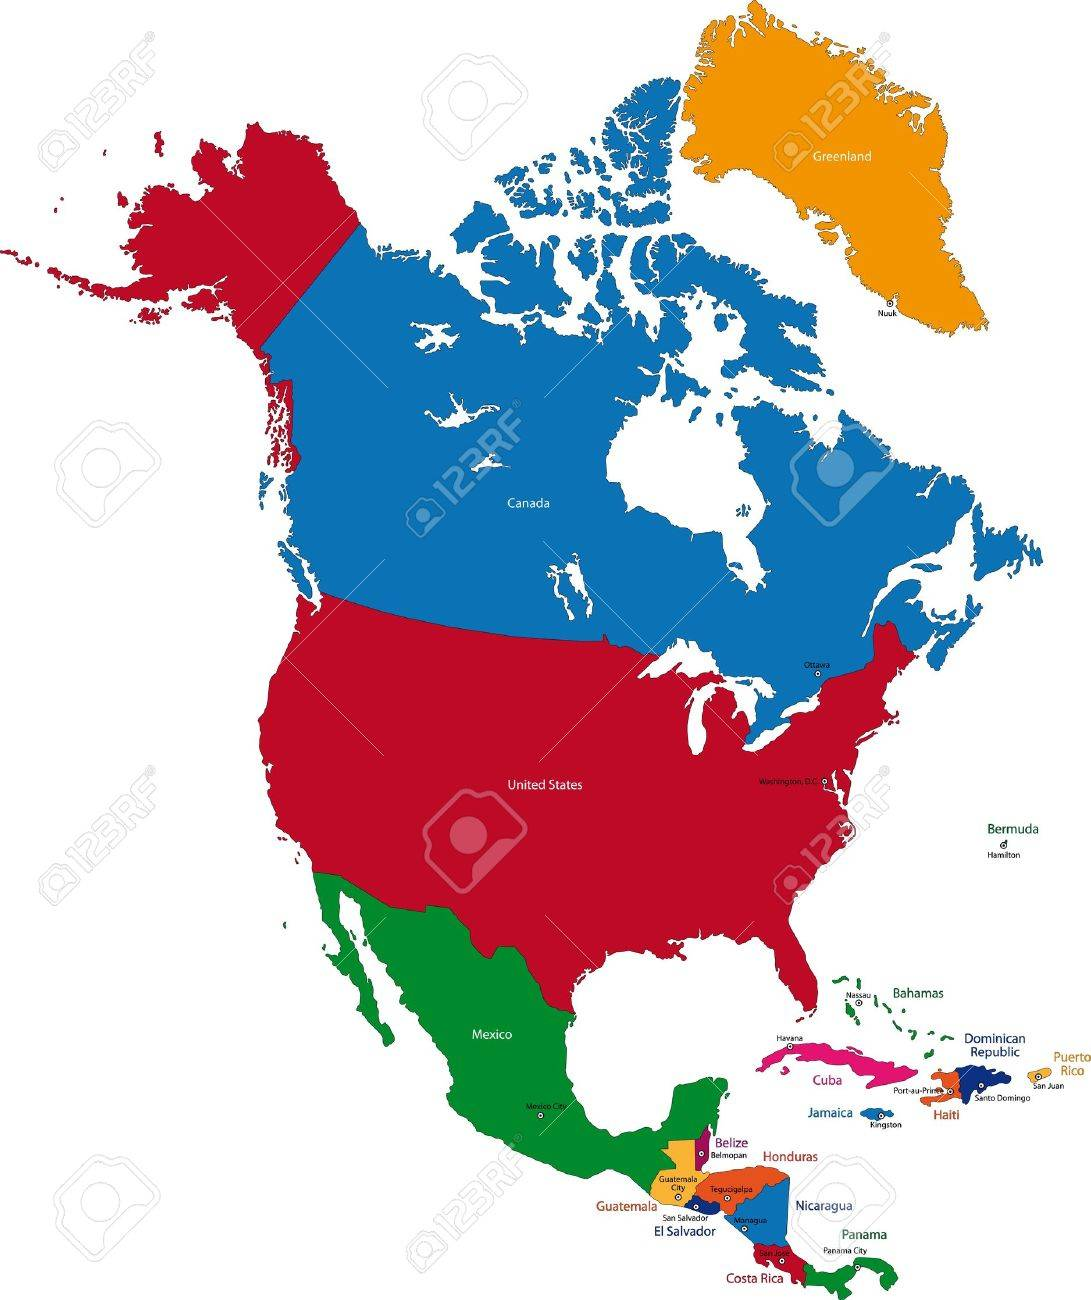 Colorful North America Map With Countries And Capital Cities Royalty Free Cliparts Vectors And Stock Illustration Image 21687880